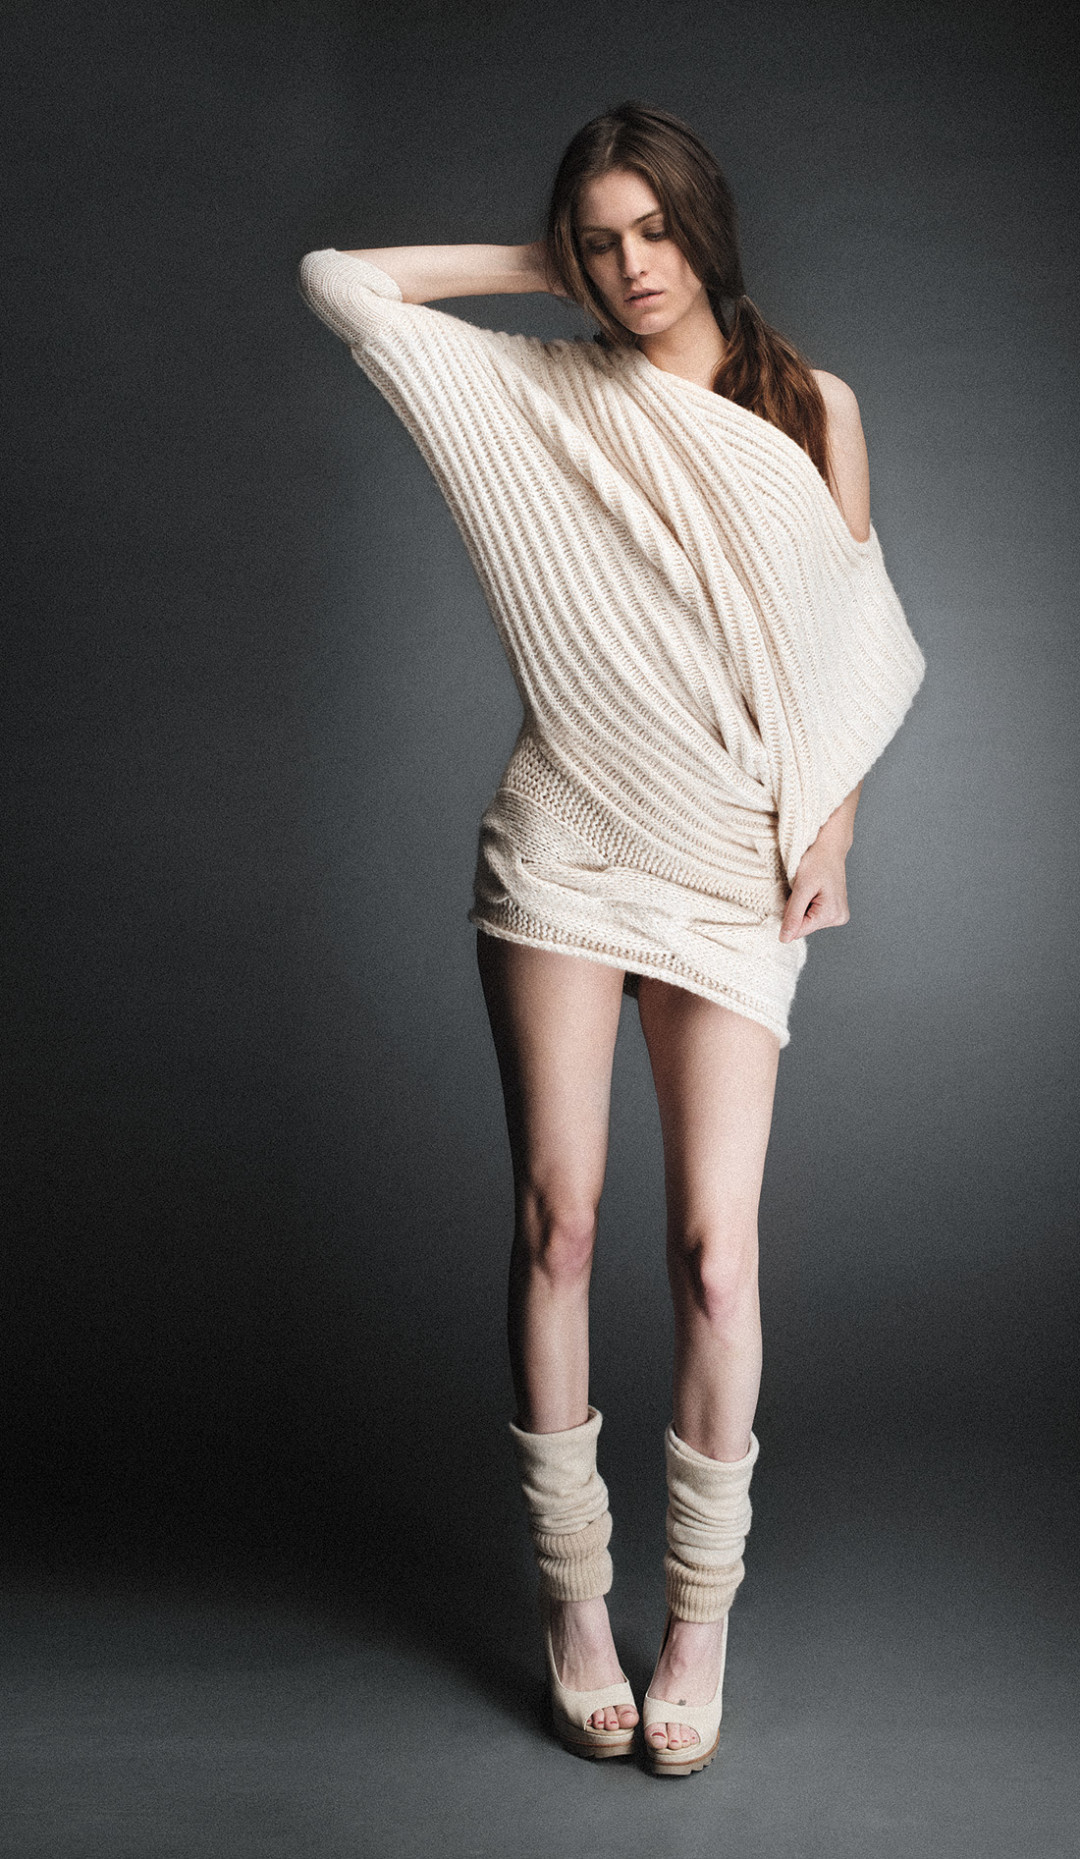 0213 beige knit dress sjylrh